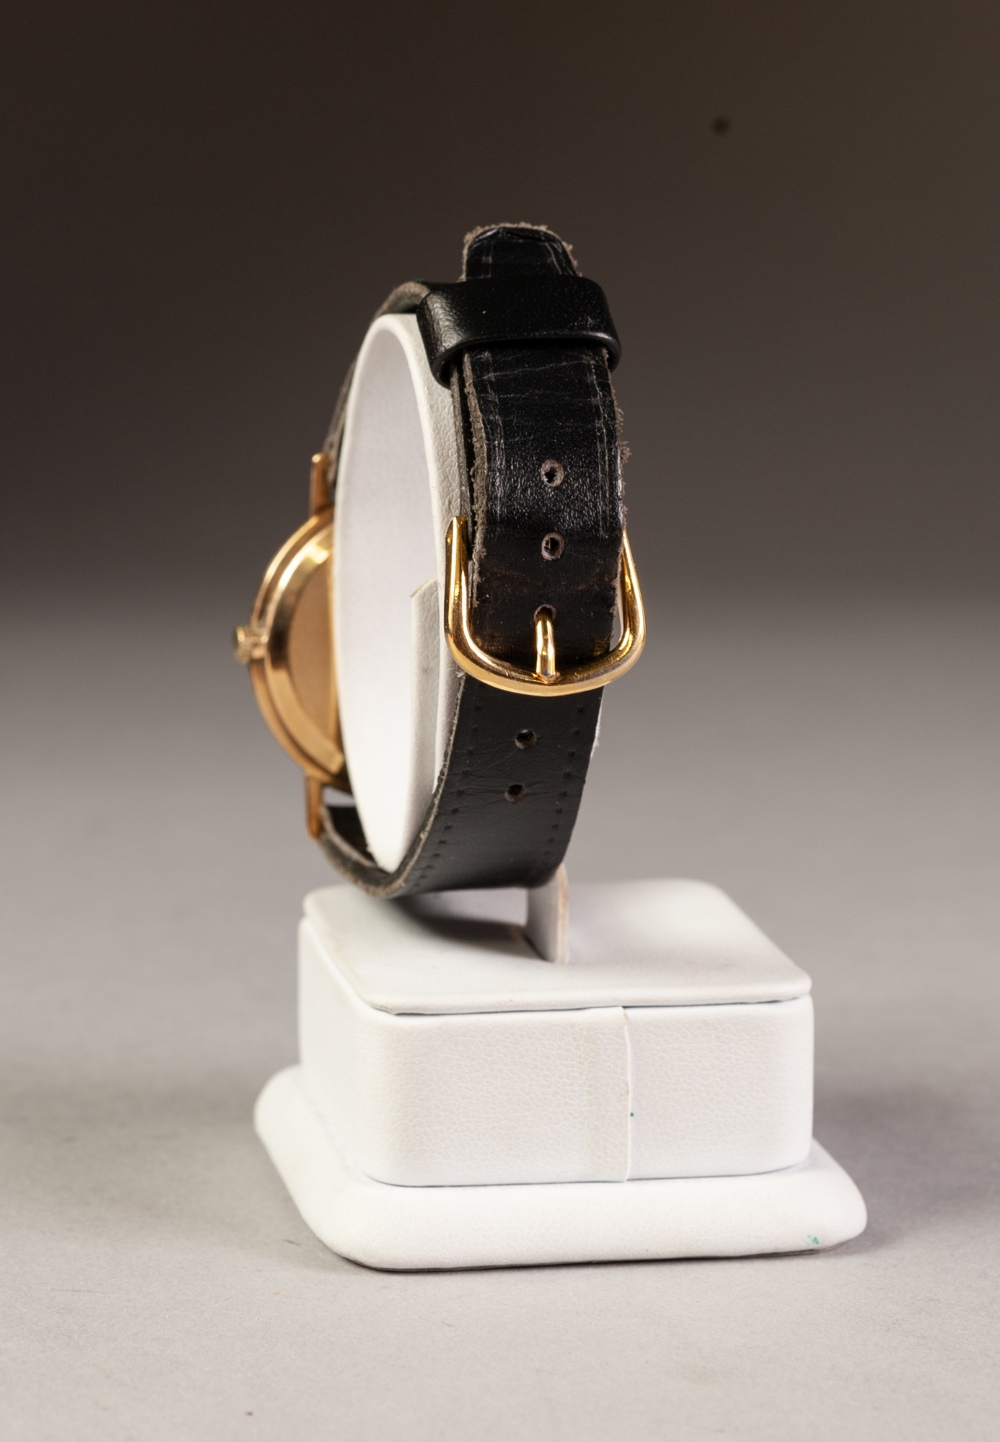 Lot 9 - 9ct GOLD CASED AVIA 17 JEWEL INCABLOC GENTLEMAN'S WRISTWATCH, on leather strap